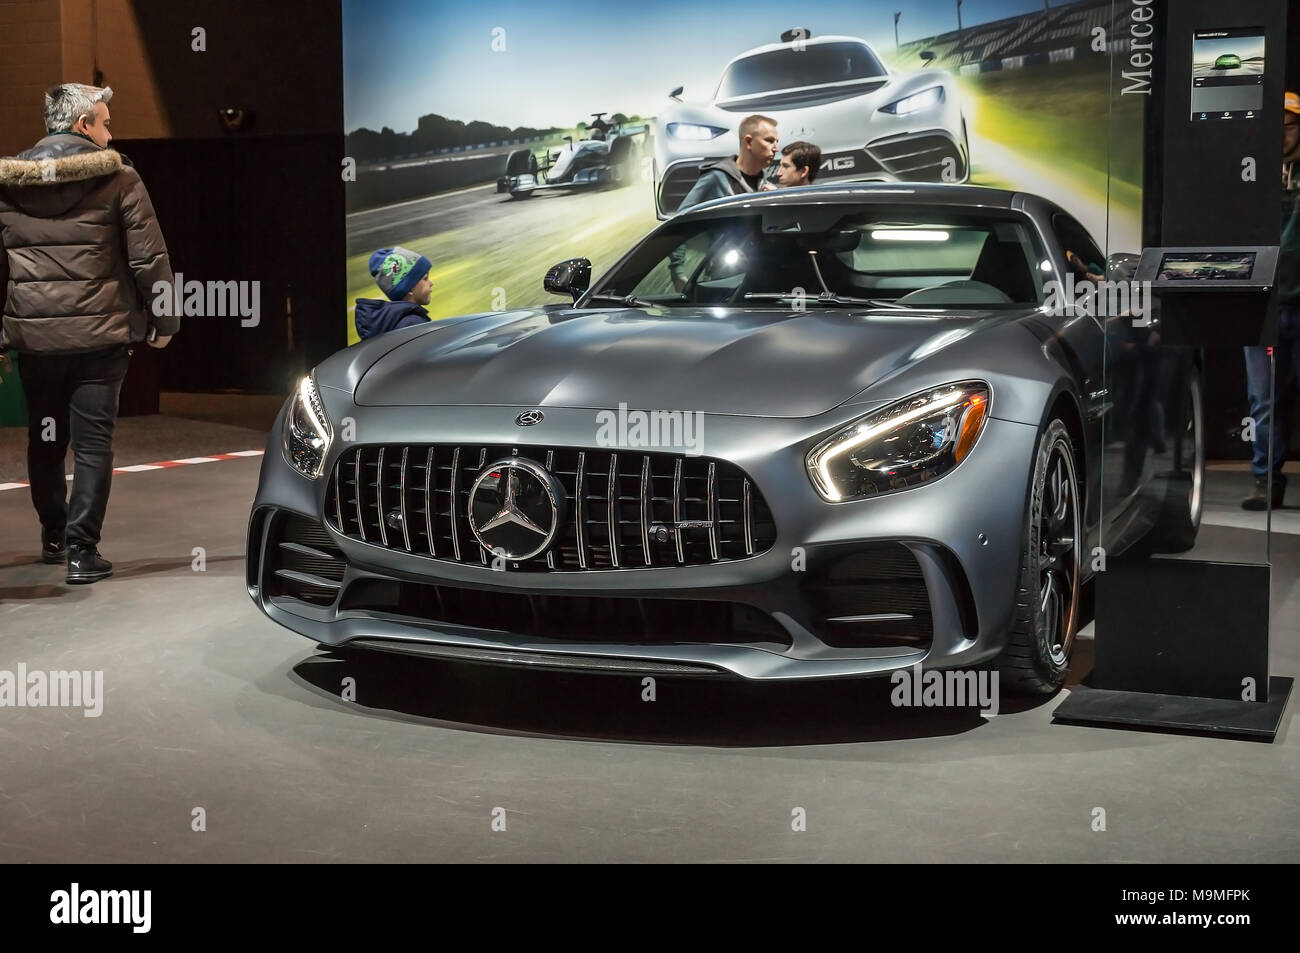 Toronto, Canada - 2018-02-19: Visitors of 2018 Canadian International AutoShow beside the Mercedes-AMG GT R displayed on the Mercedes-Benz exposition - Stock Image